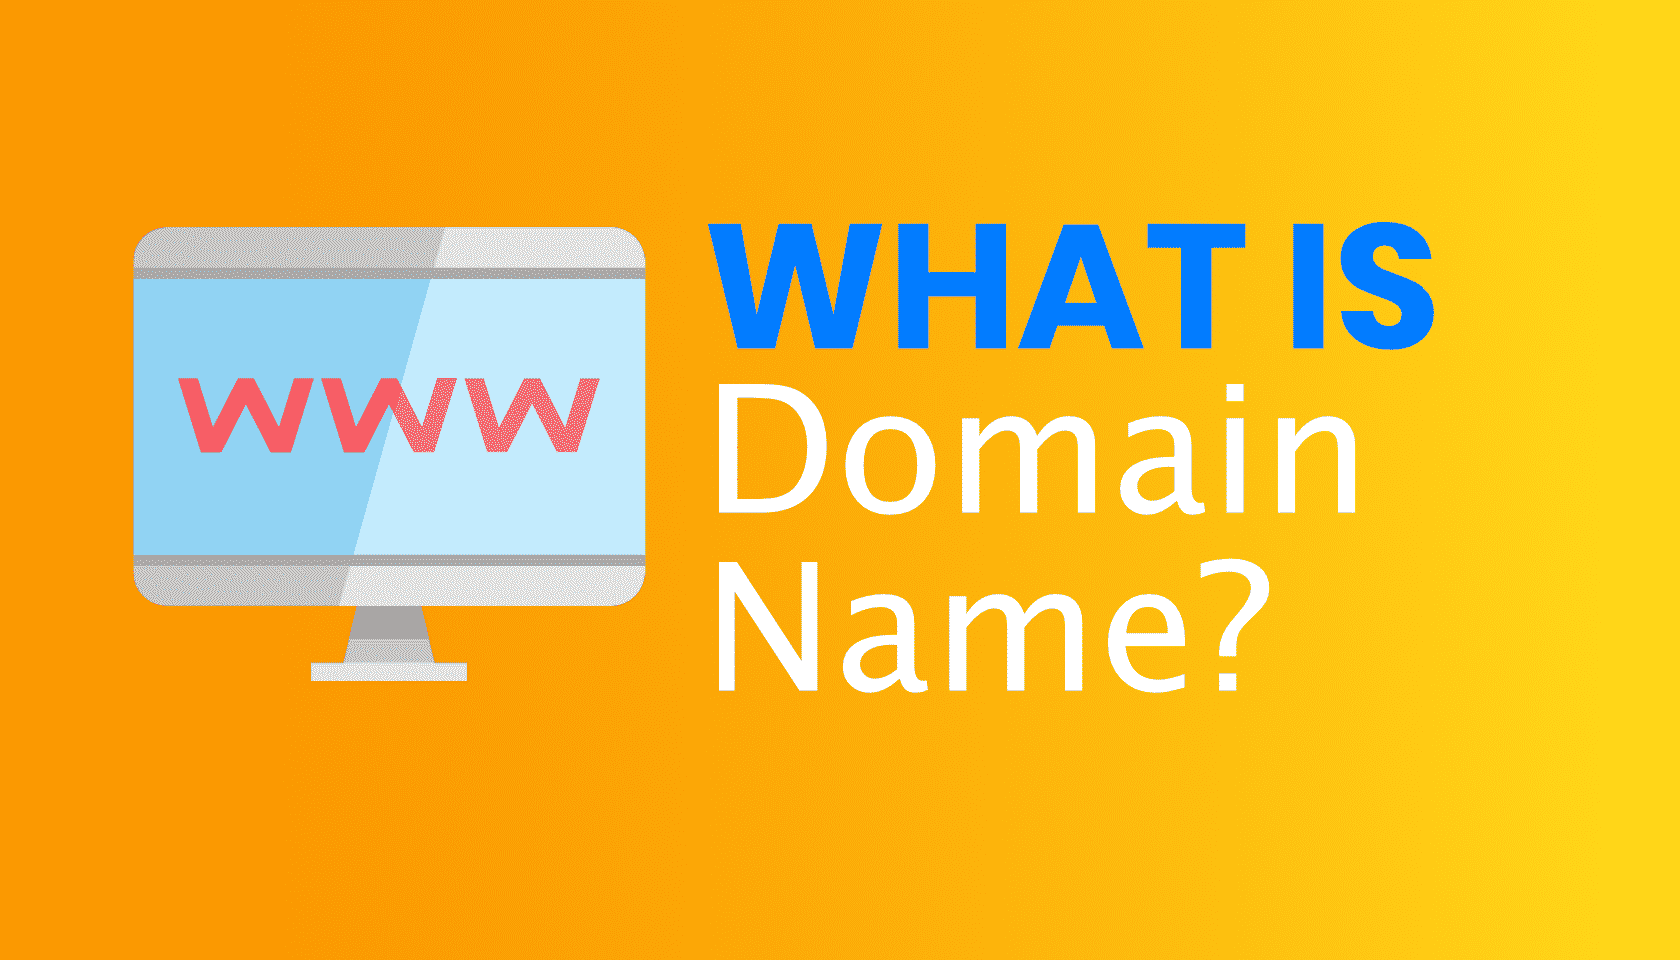 What is: Domain Name?